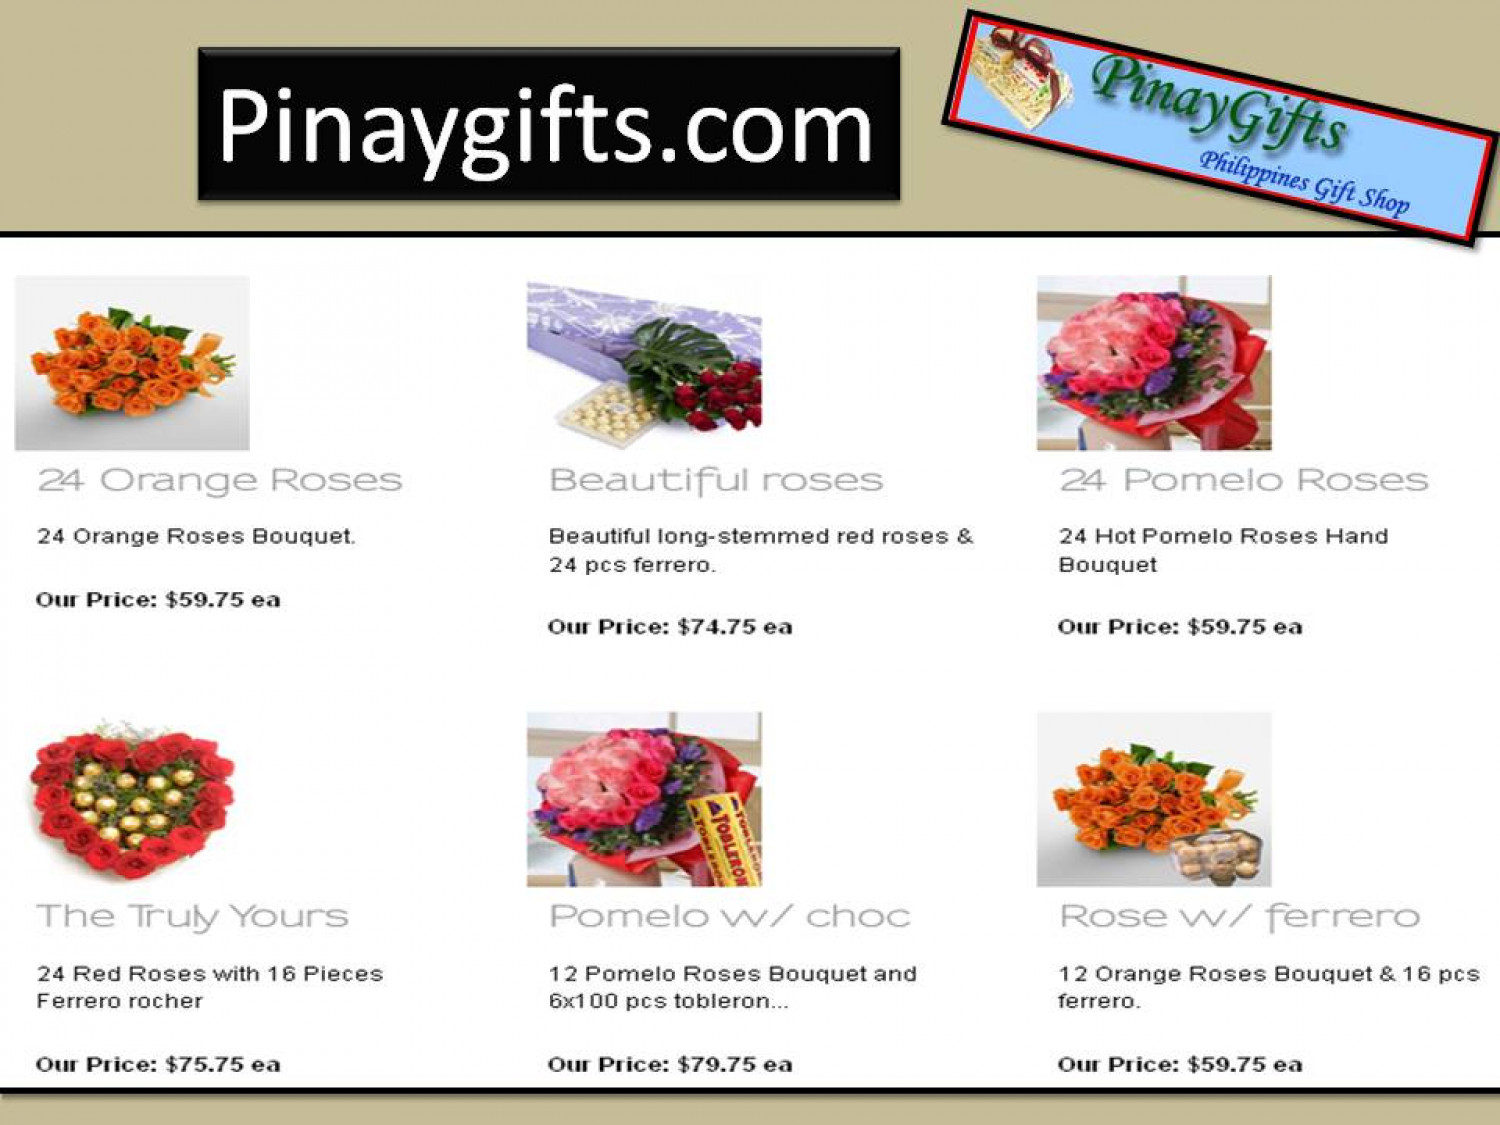 Gifts to Philippines - Pinaygifts.com Infographic